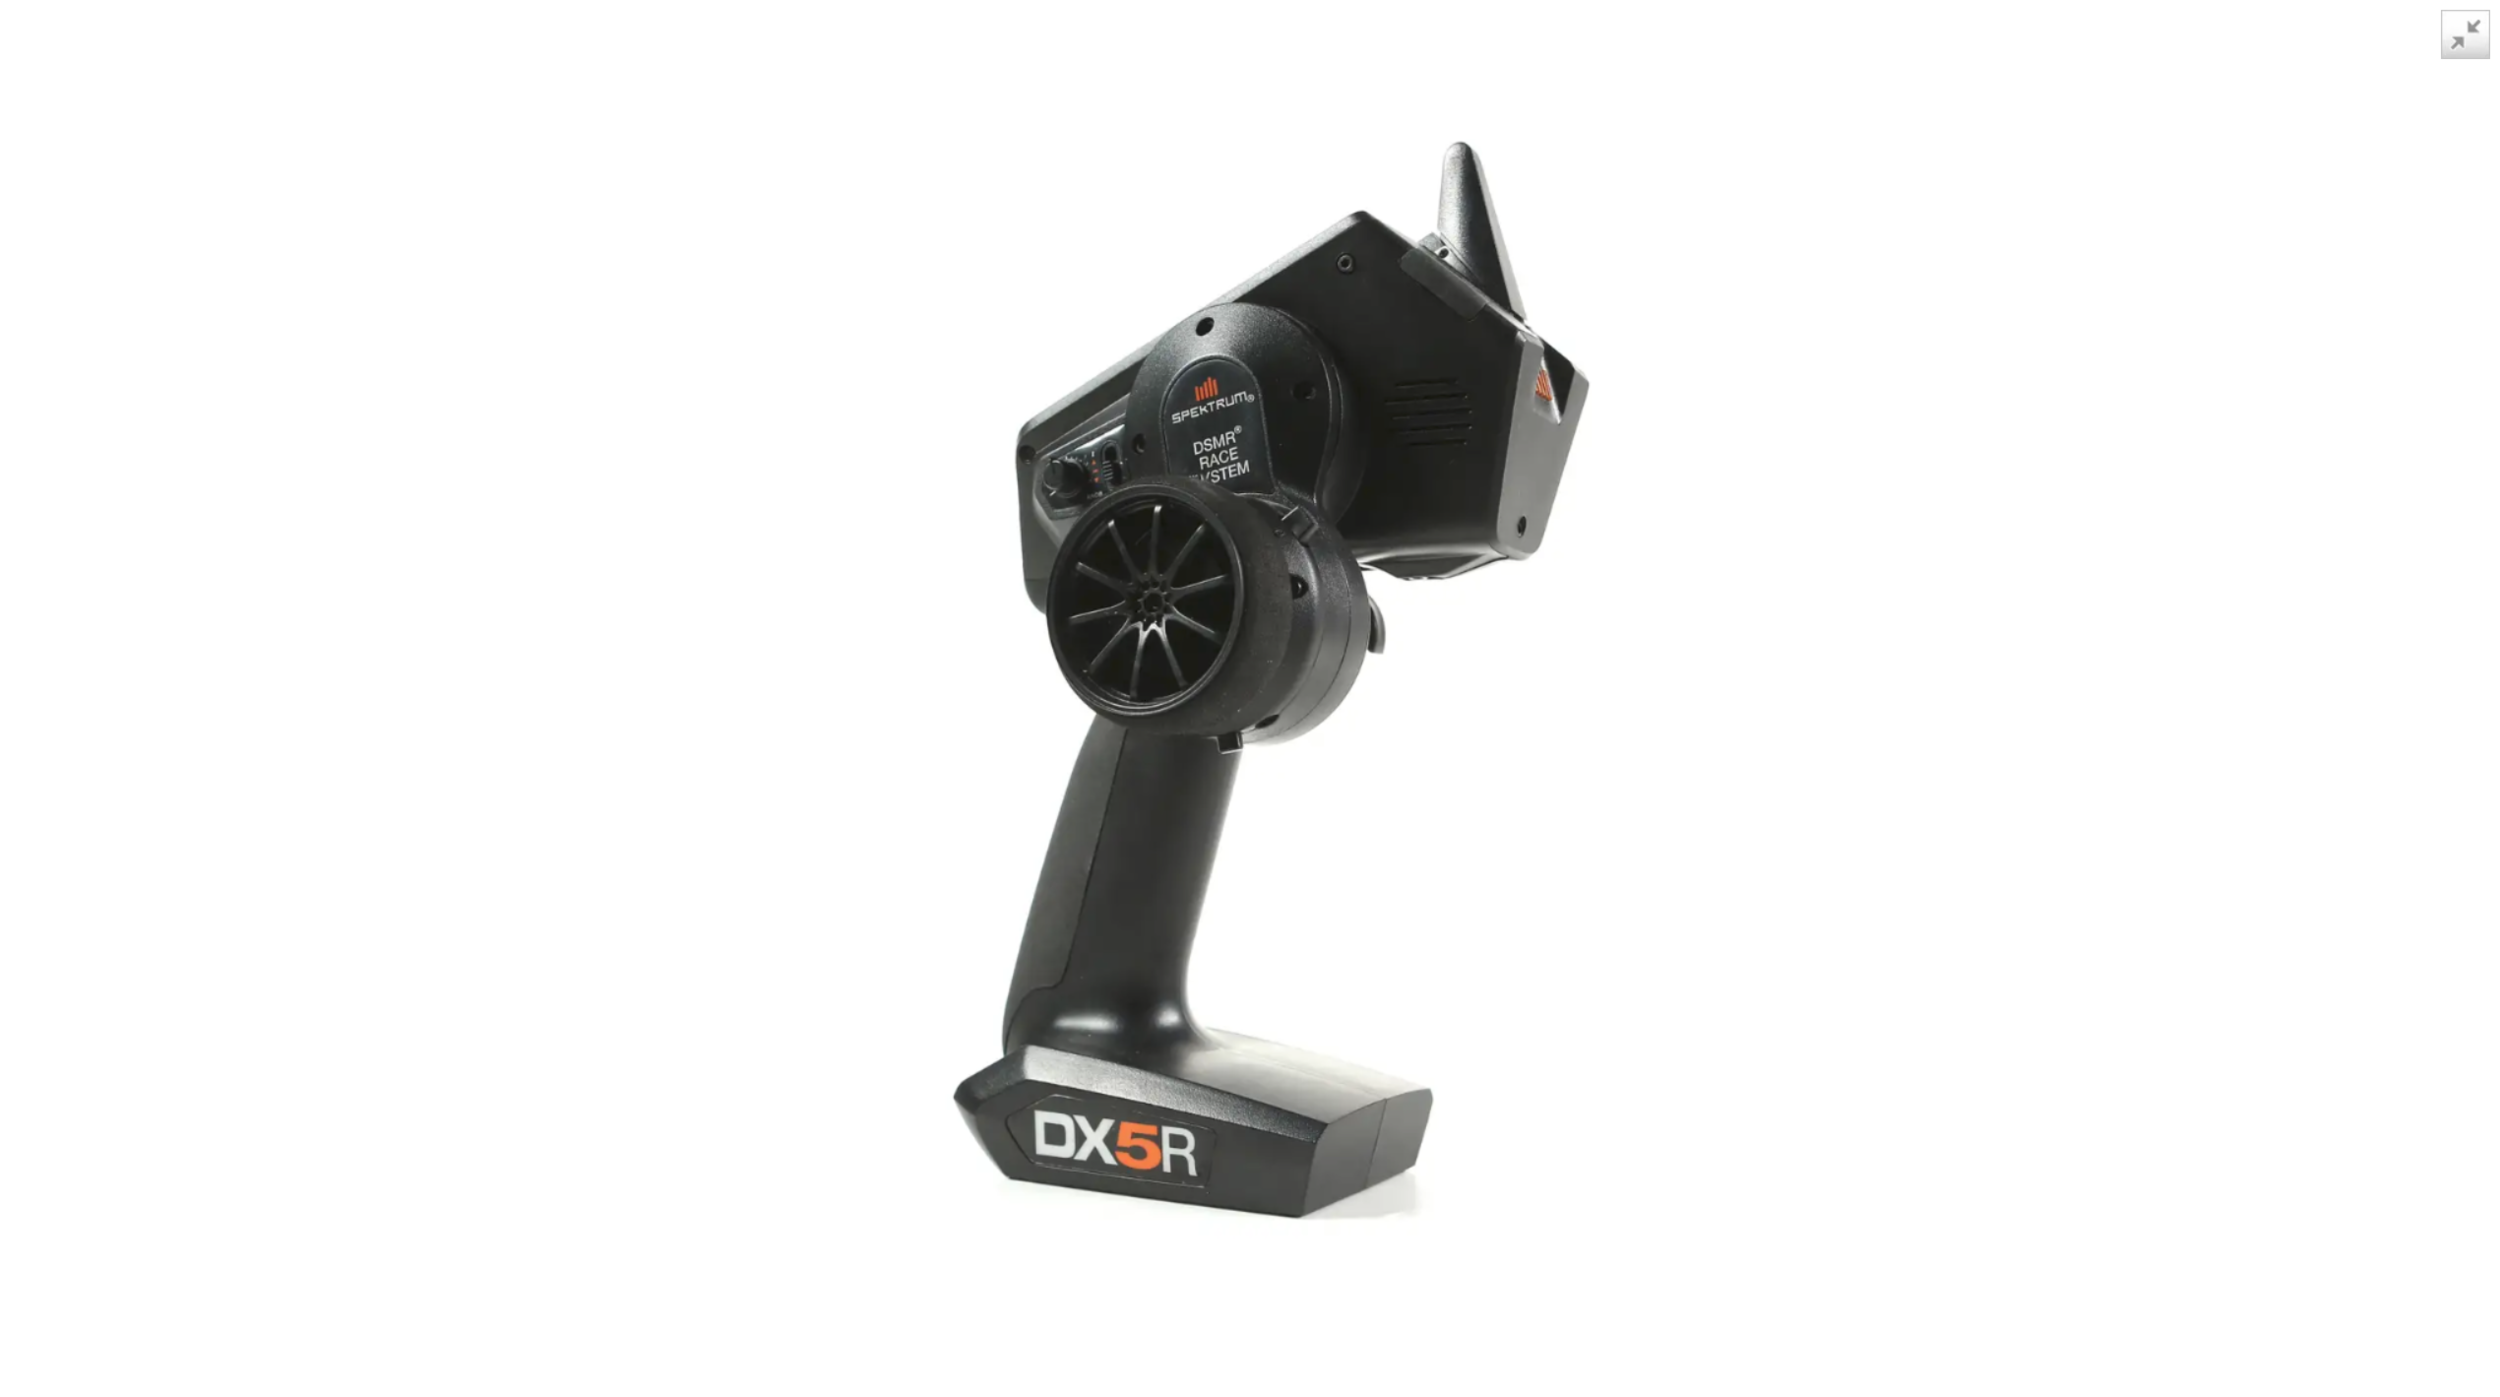 360 Photo of Spektrum DX5R Controller